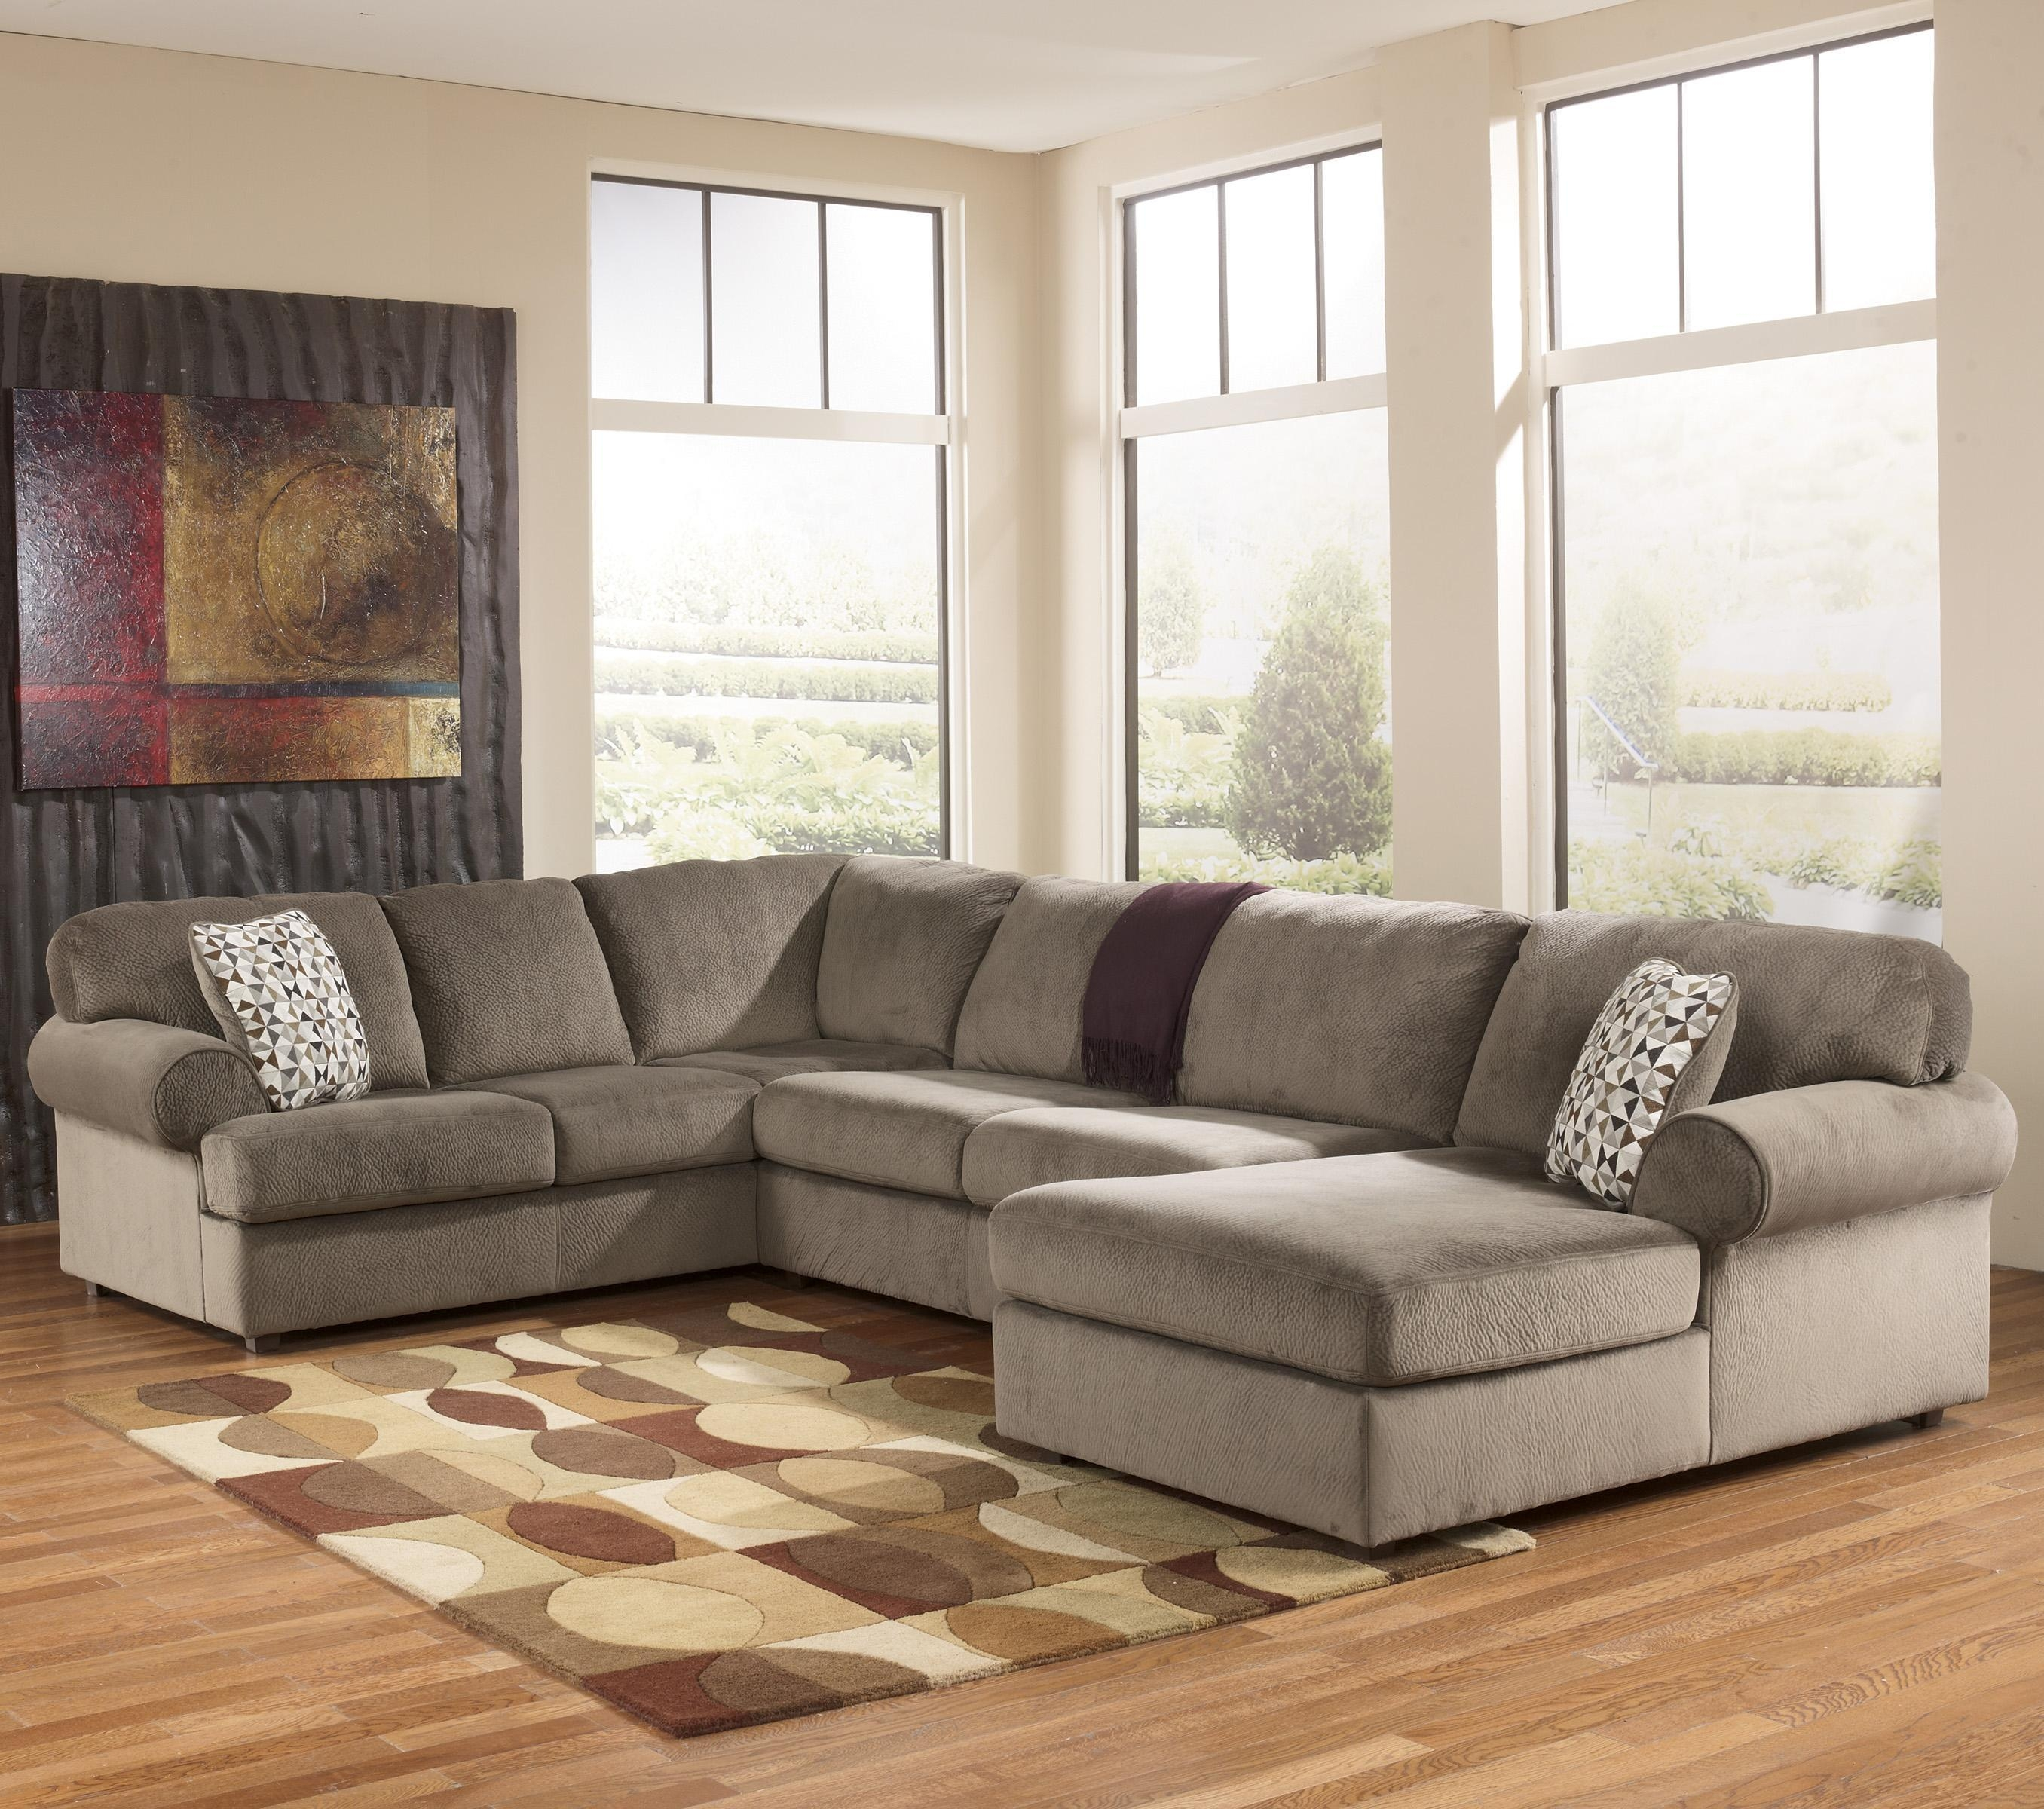 Sofas Center : Ashley Furniture Sectionals Sectional Couch Gray In Ashley Furniture Brown Corduroy Sectional Sofas (Image 17 of 20)